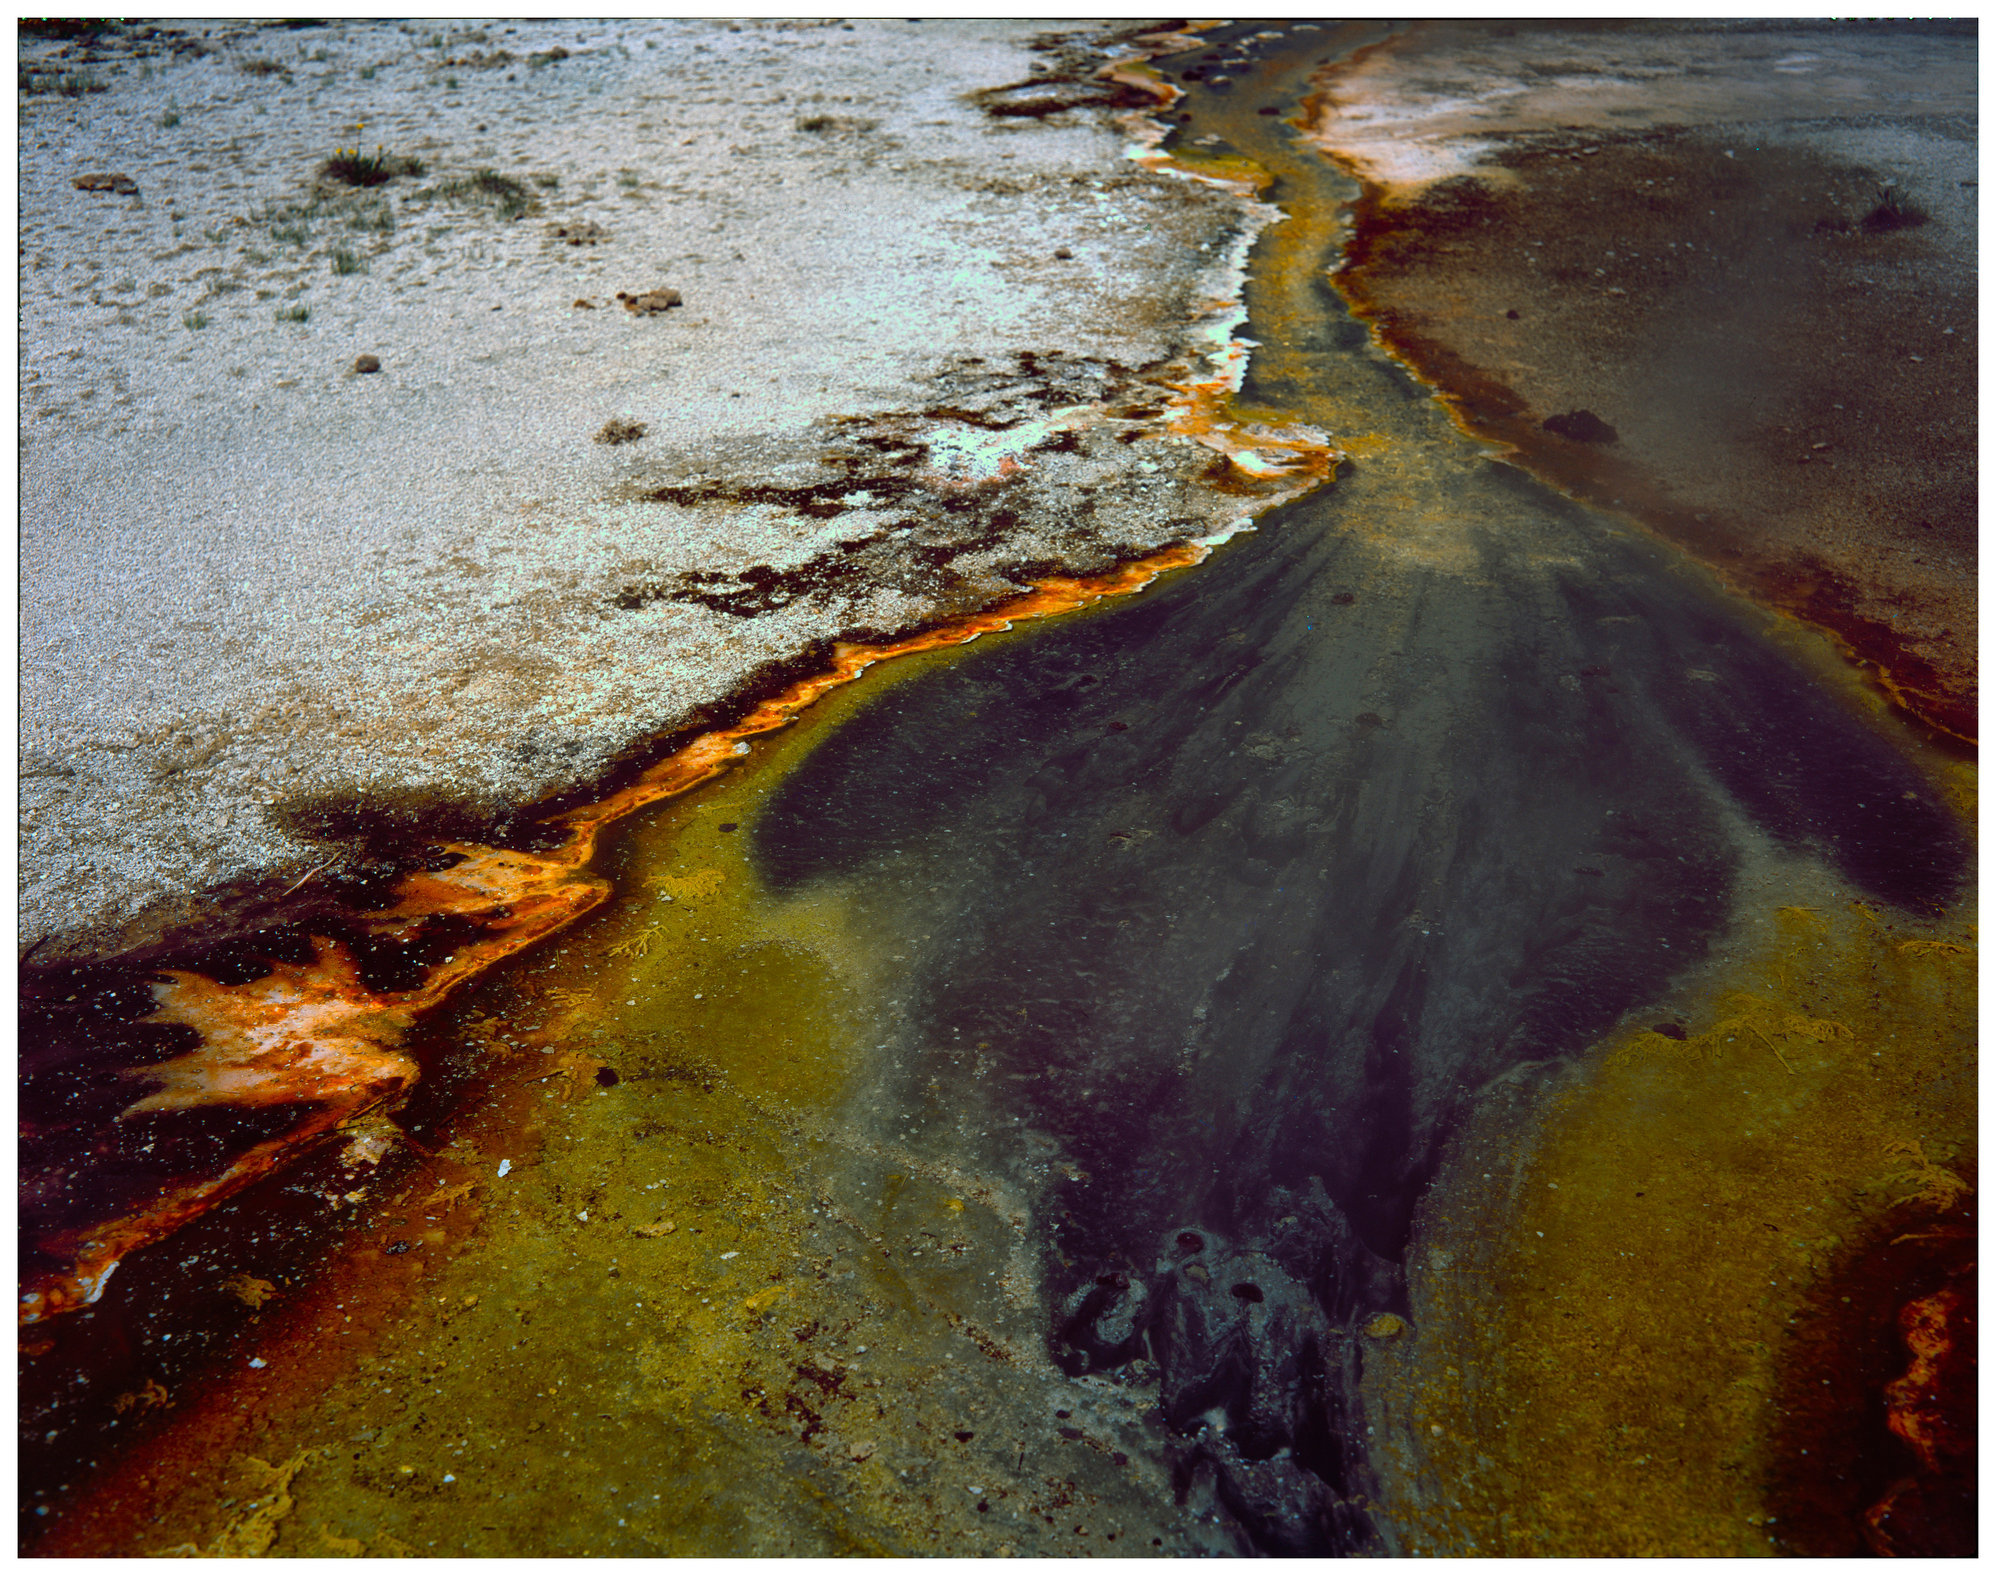 yellowstone no.3.jpg